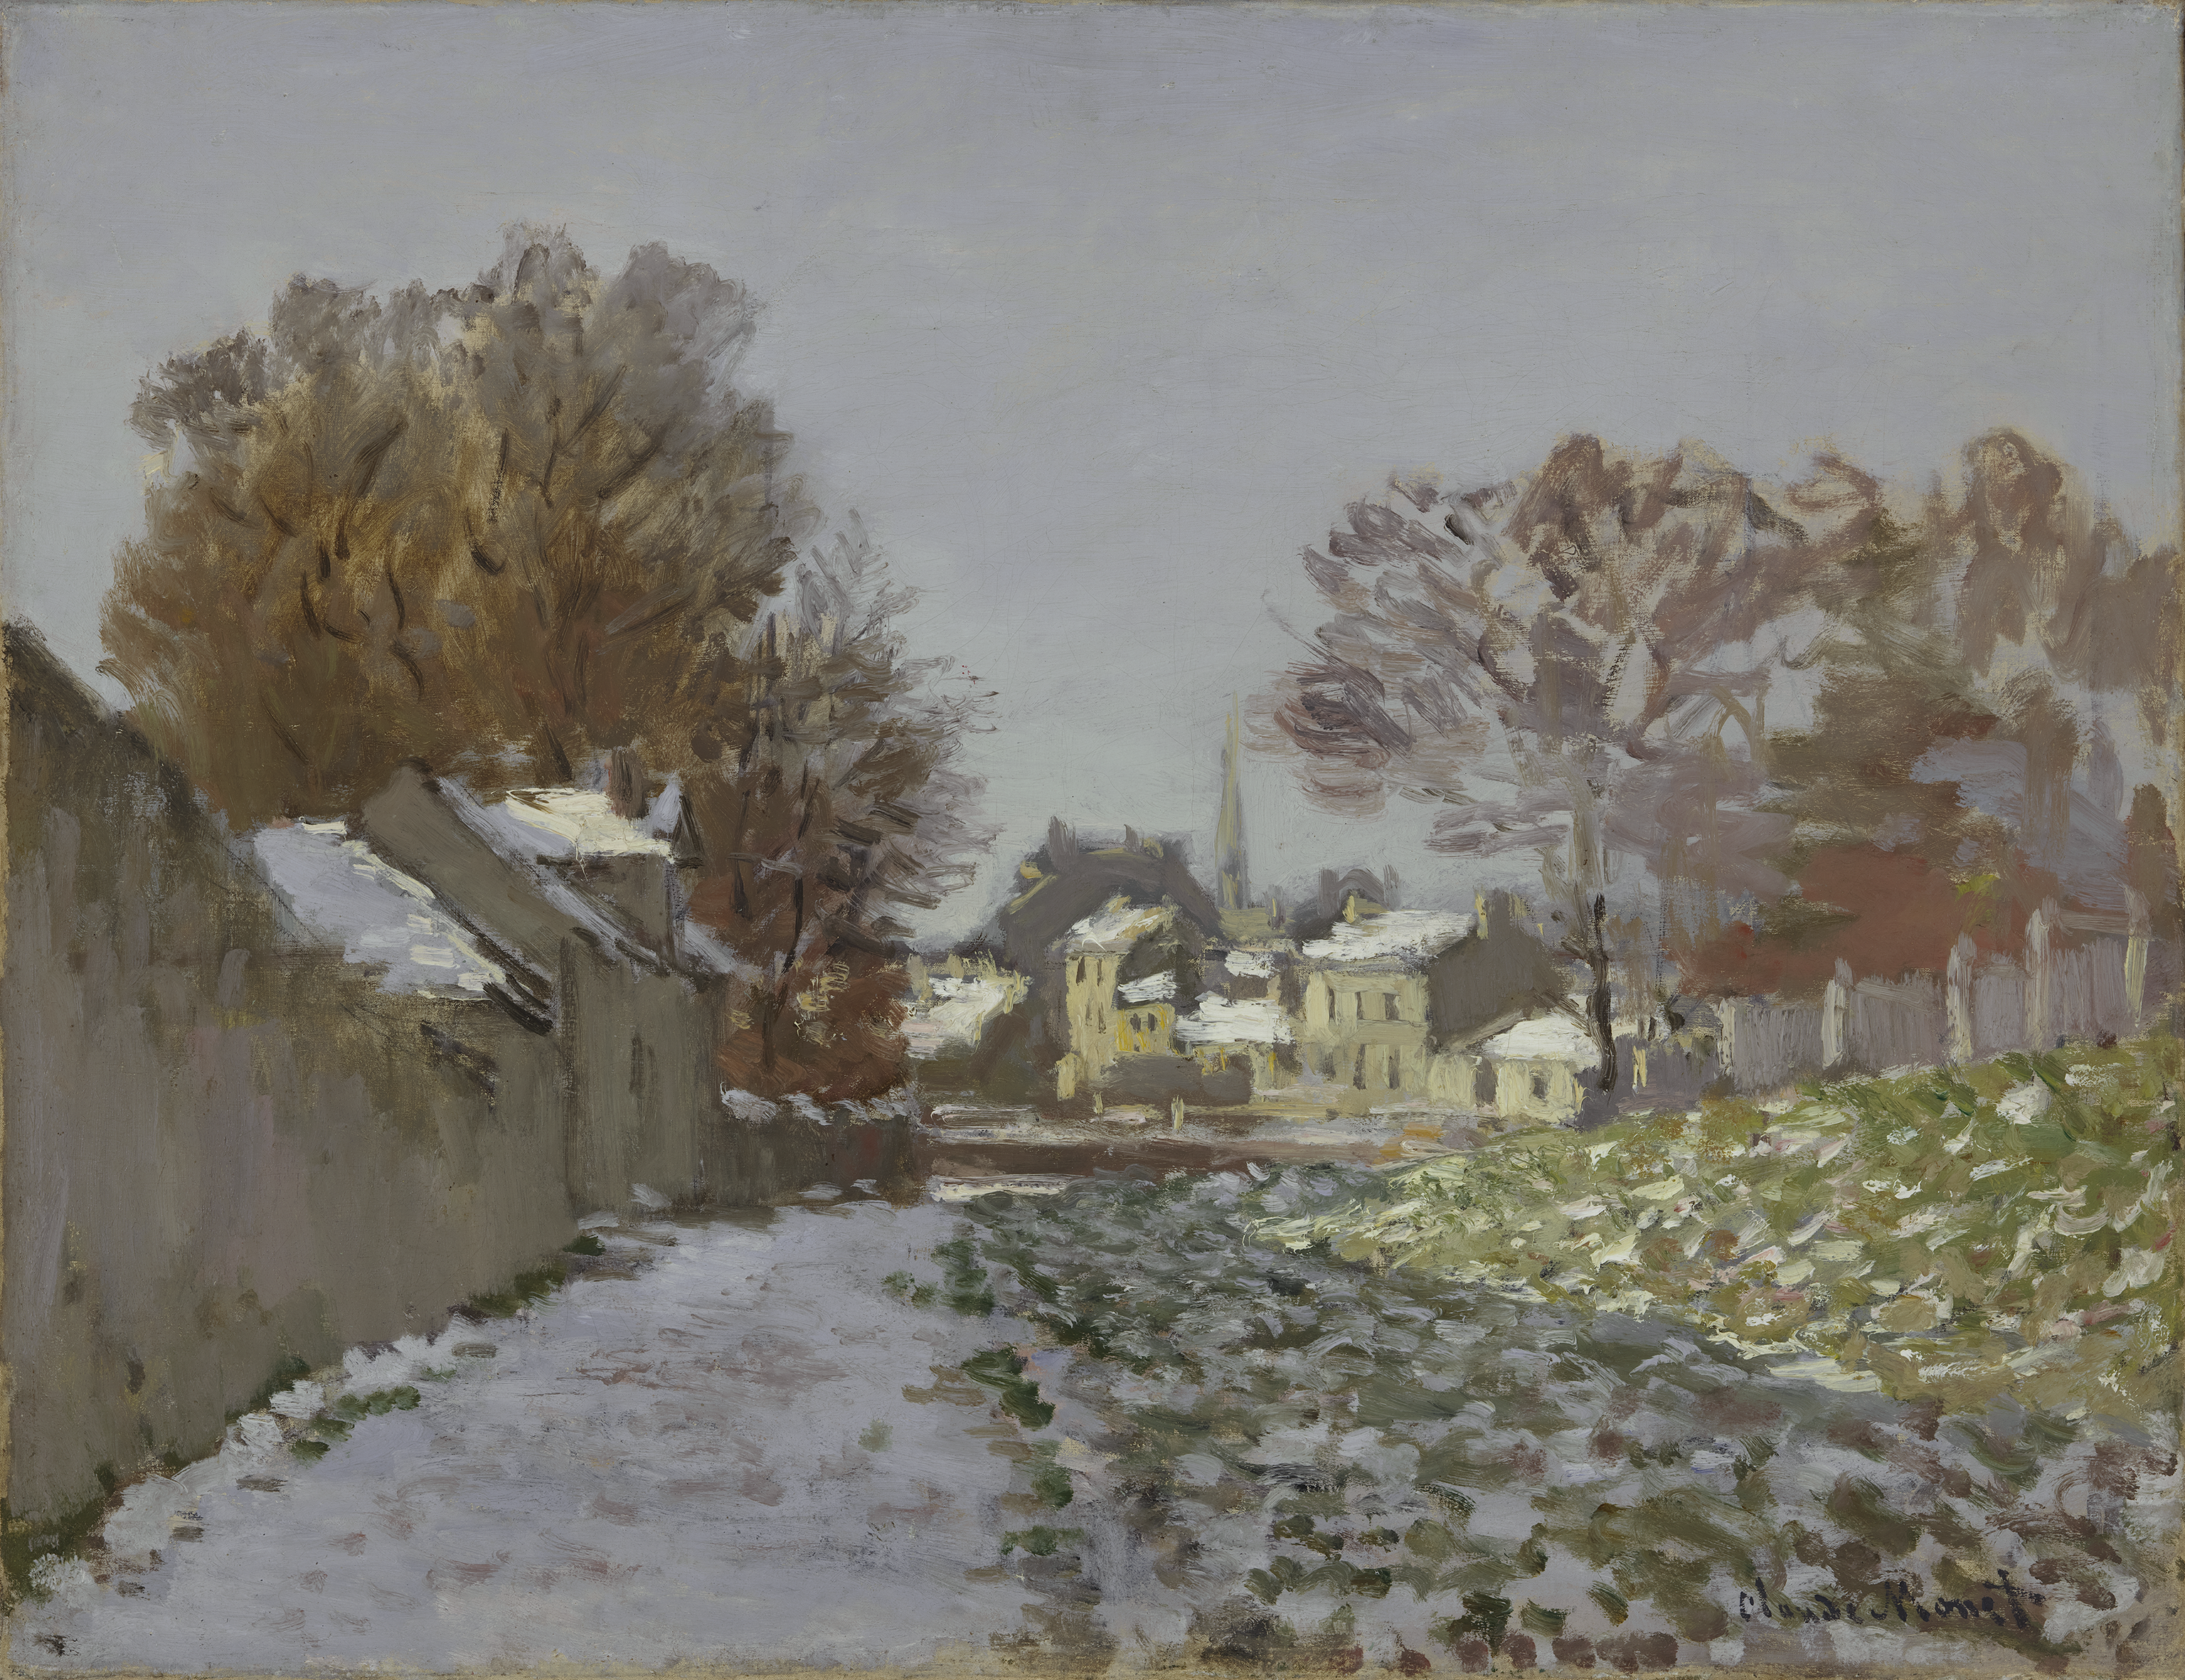 A view of a French suburb after a light snow has fallen. In the foreground, a stone wall on the left lines a walkway covered in snow.